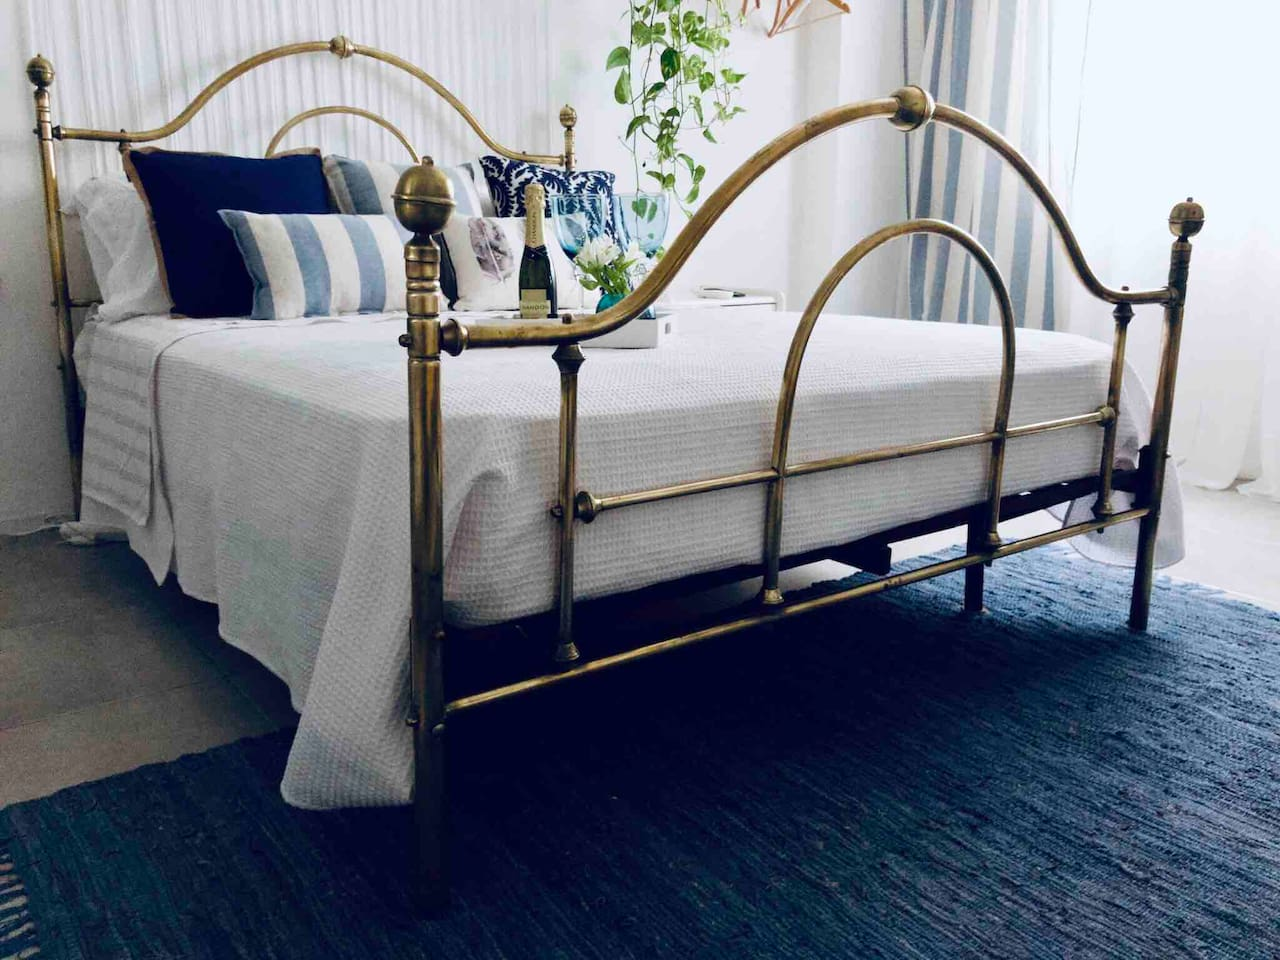 Bronze made queen size bed. The cushions has been designed and made by the apartment host, creating an authentic and unique apartment decoration.